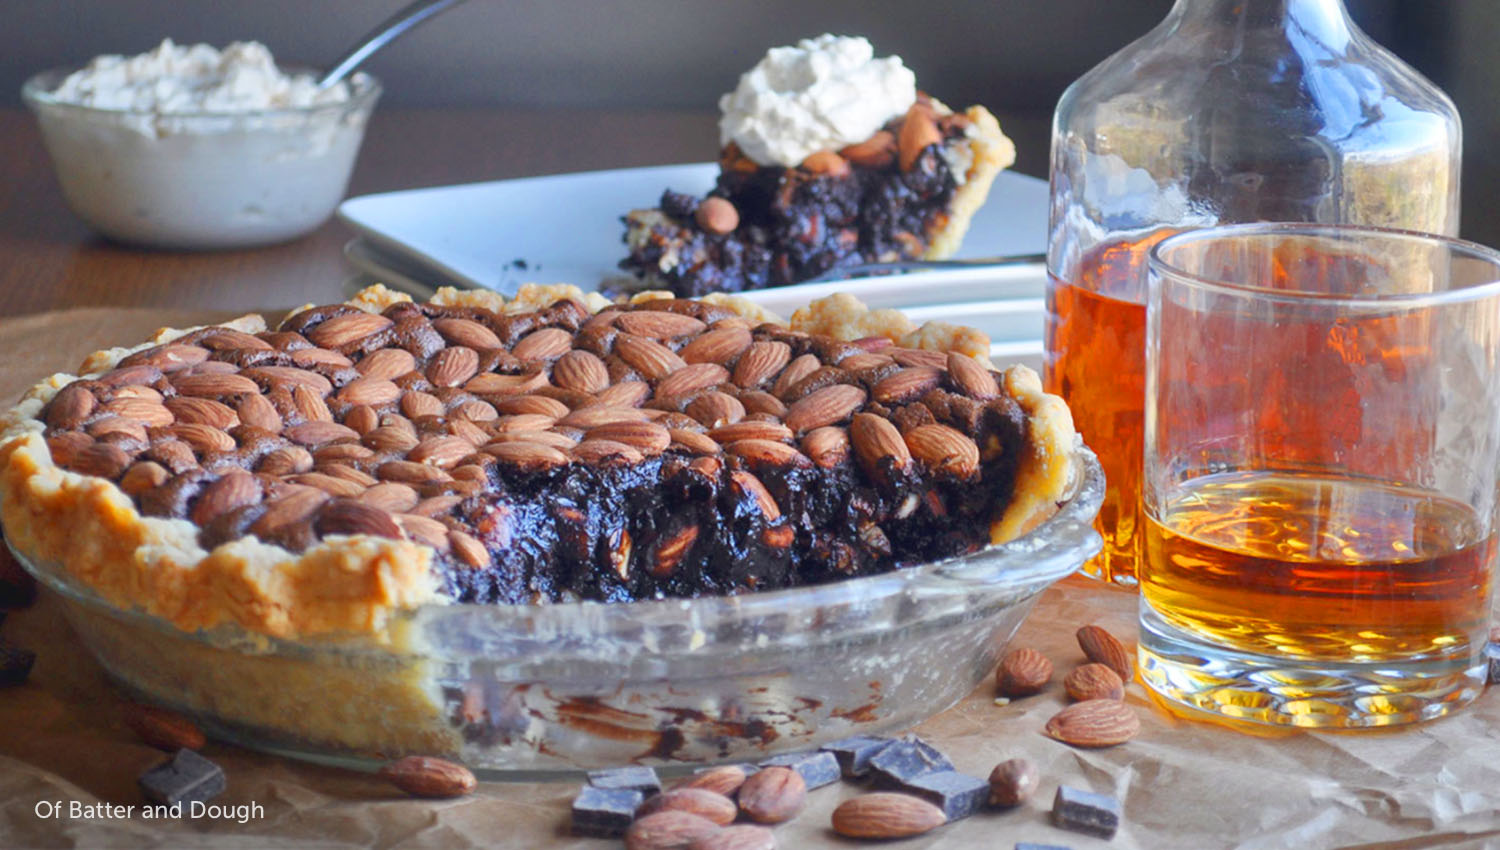 sb-50-thanksgiving-chocolate-pie-w-almonds-and-bourbon